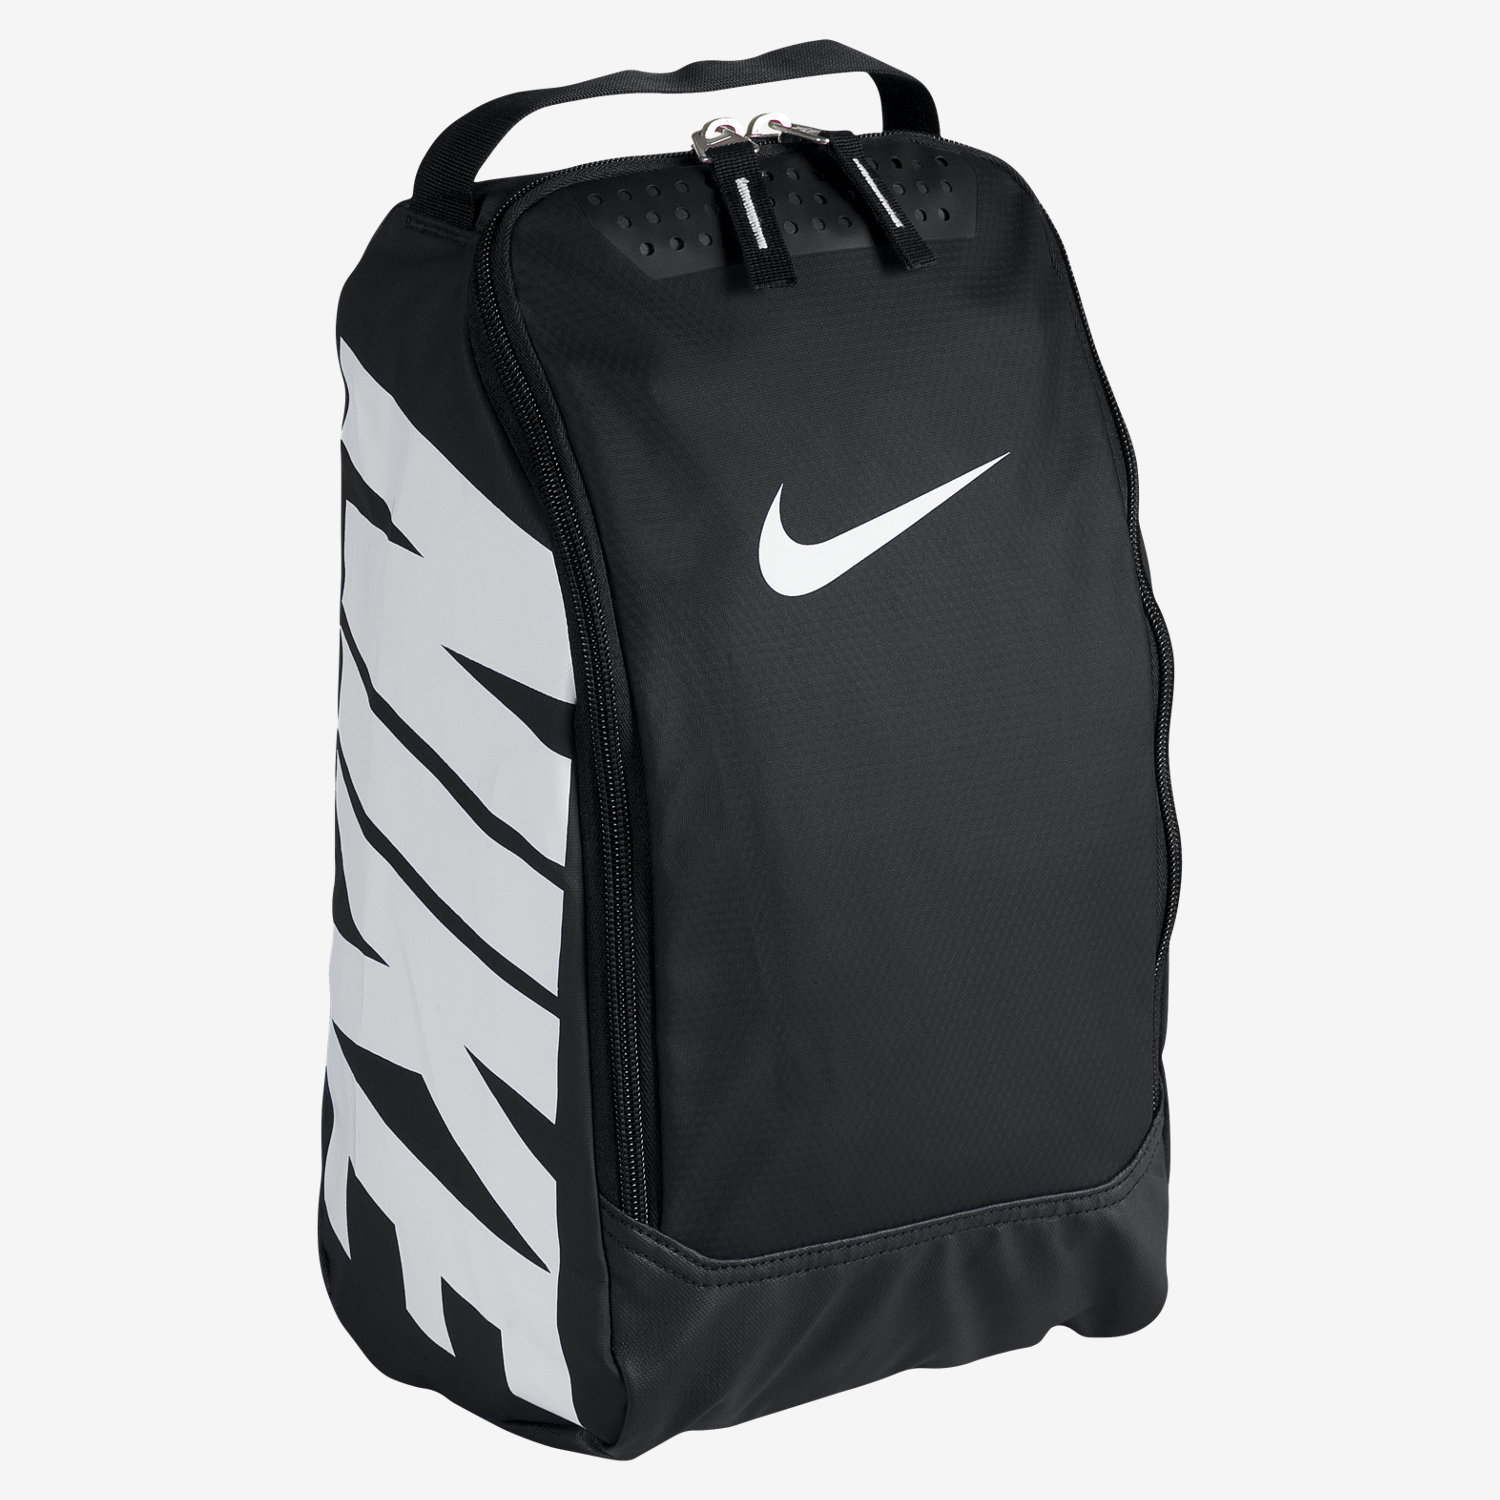 nike basketball bag cheap   OFF76% The Largest Catalog Discounts bce48d6a2b978